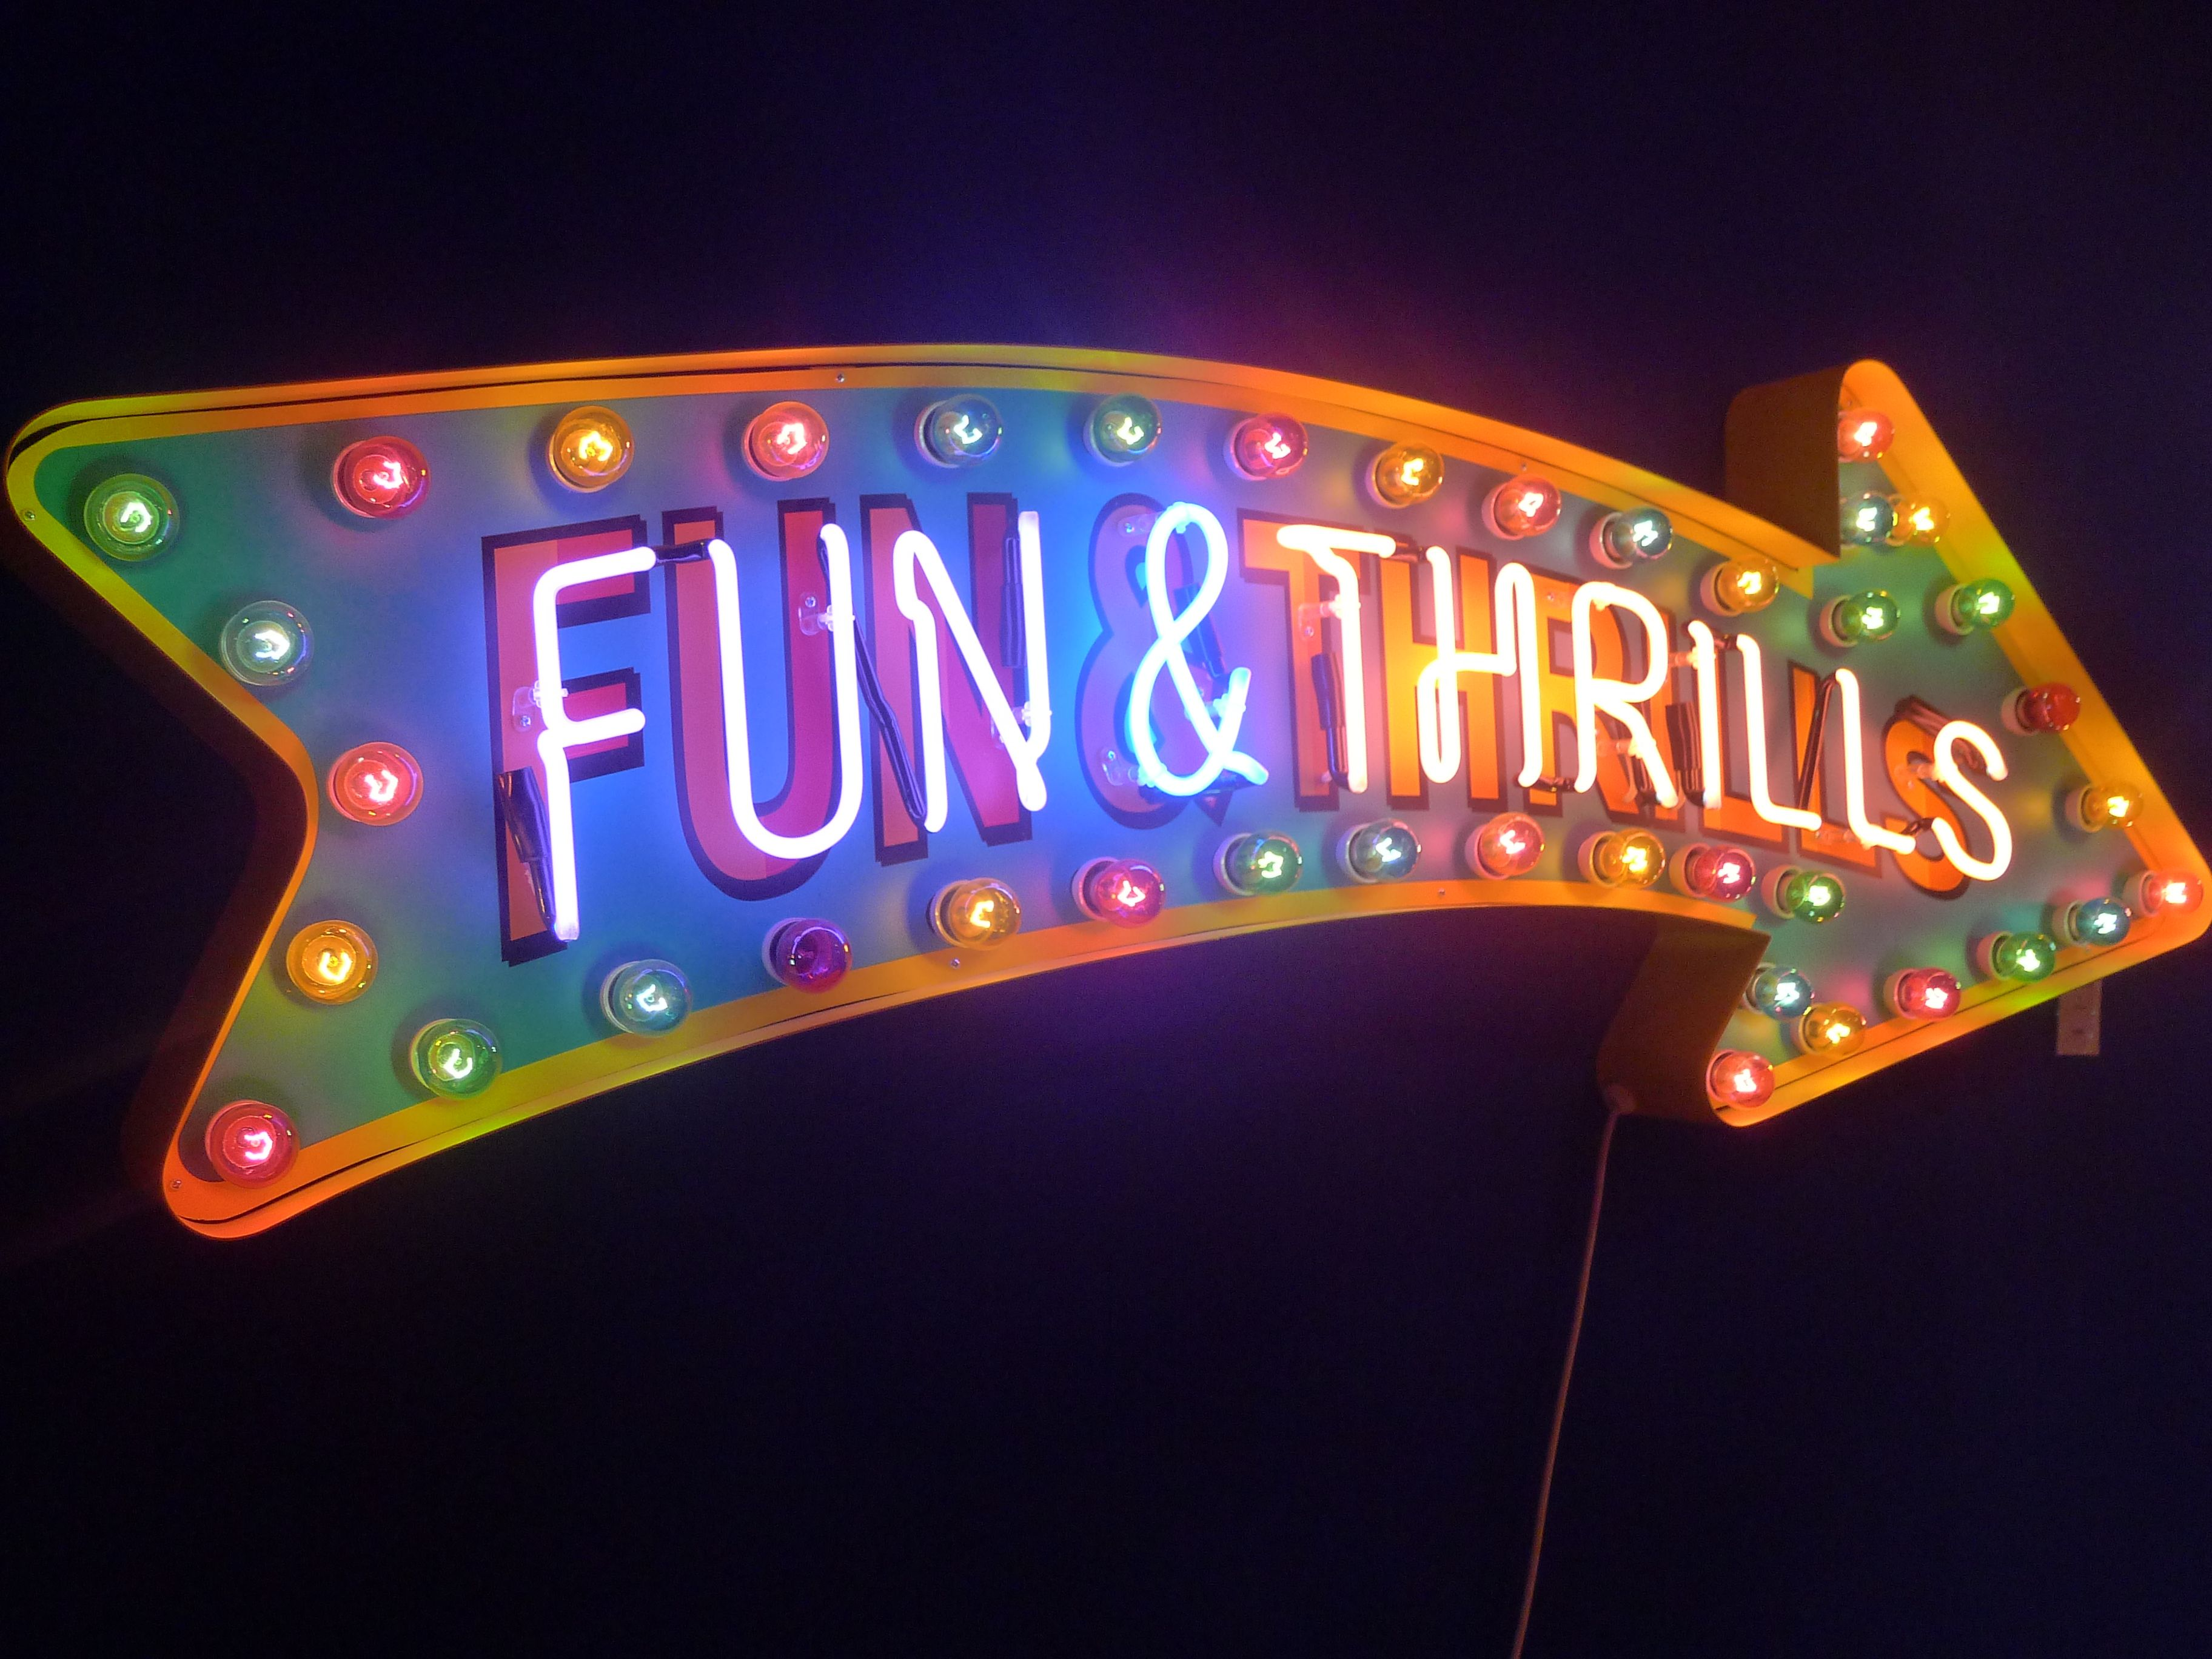 Fun thrills with images neon sign art store signs